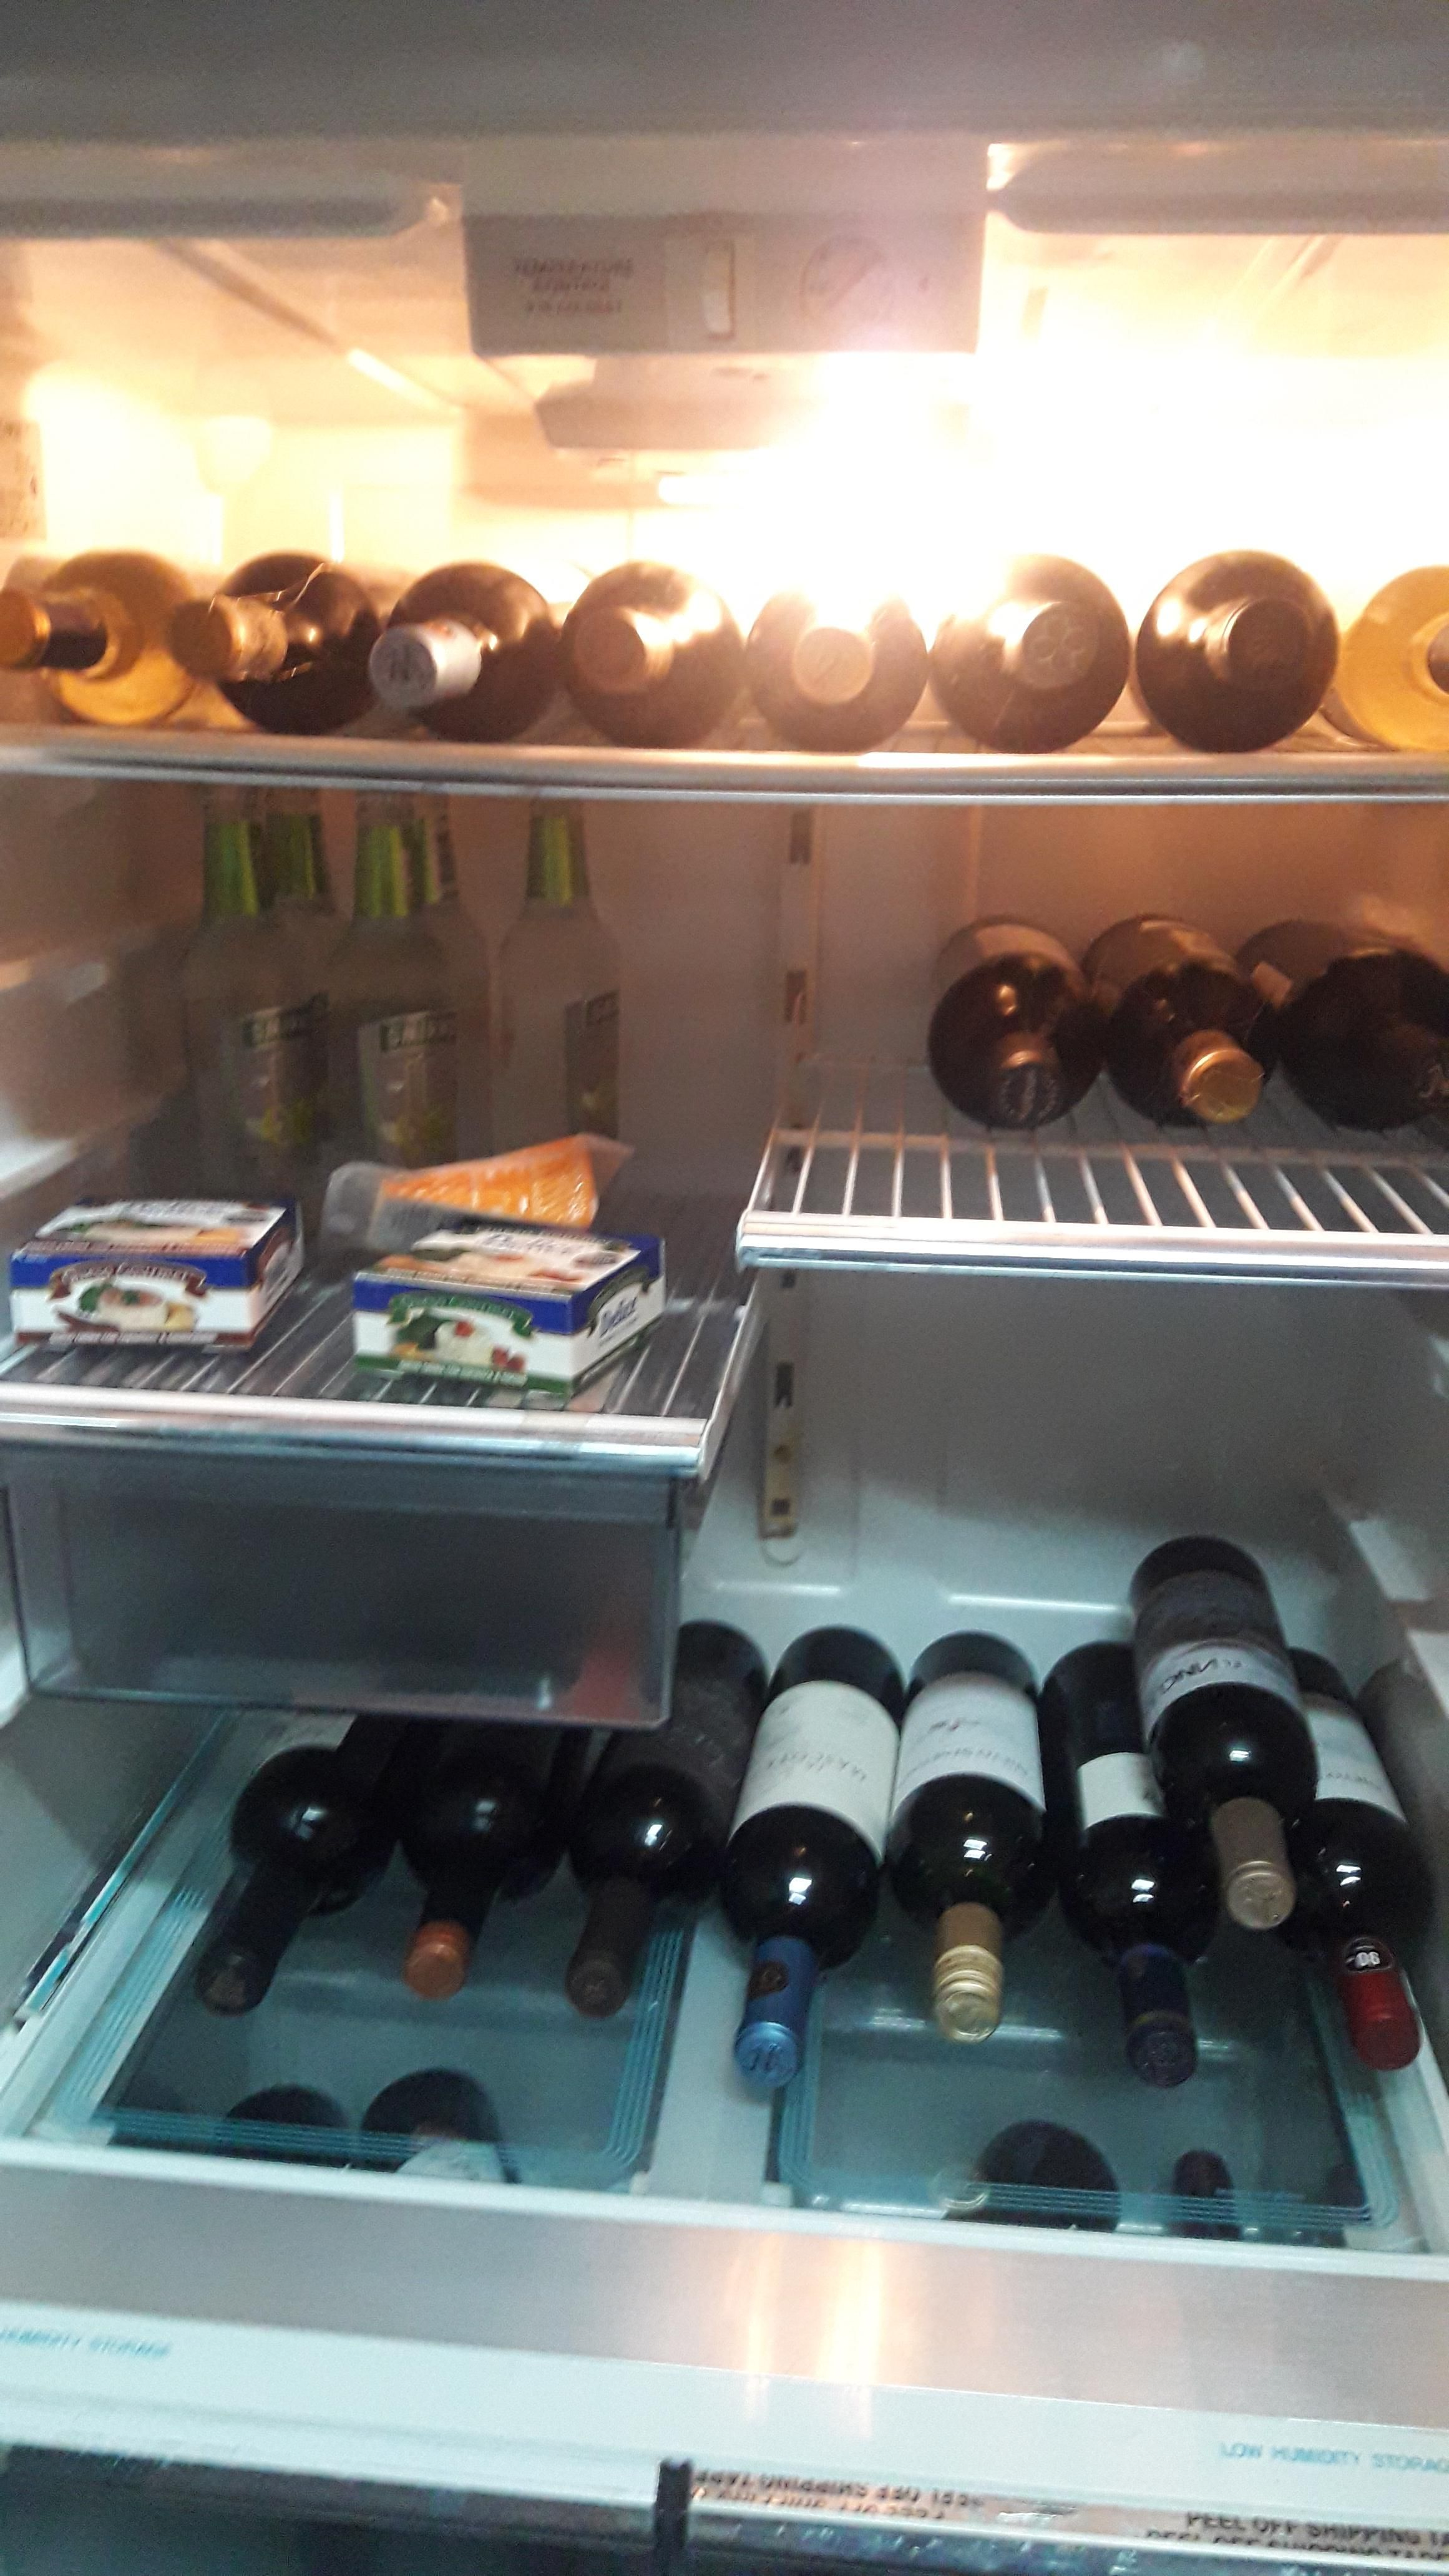 My fridge has changed a lot during the pandemic